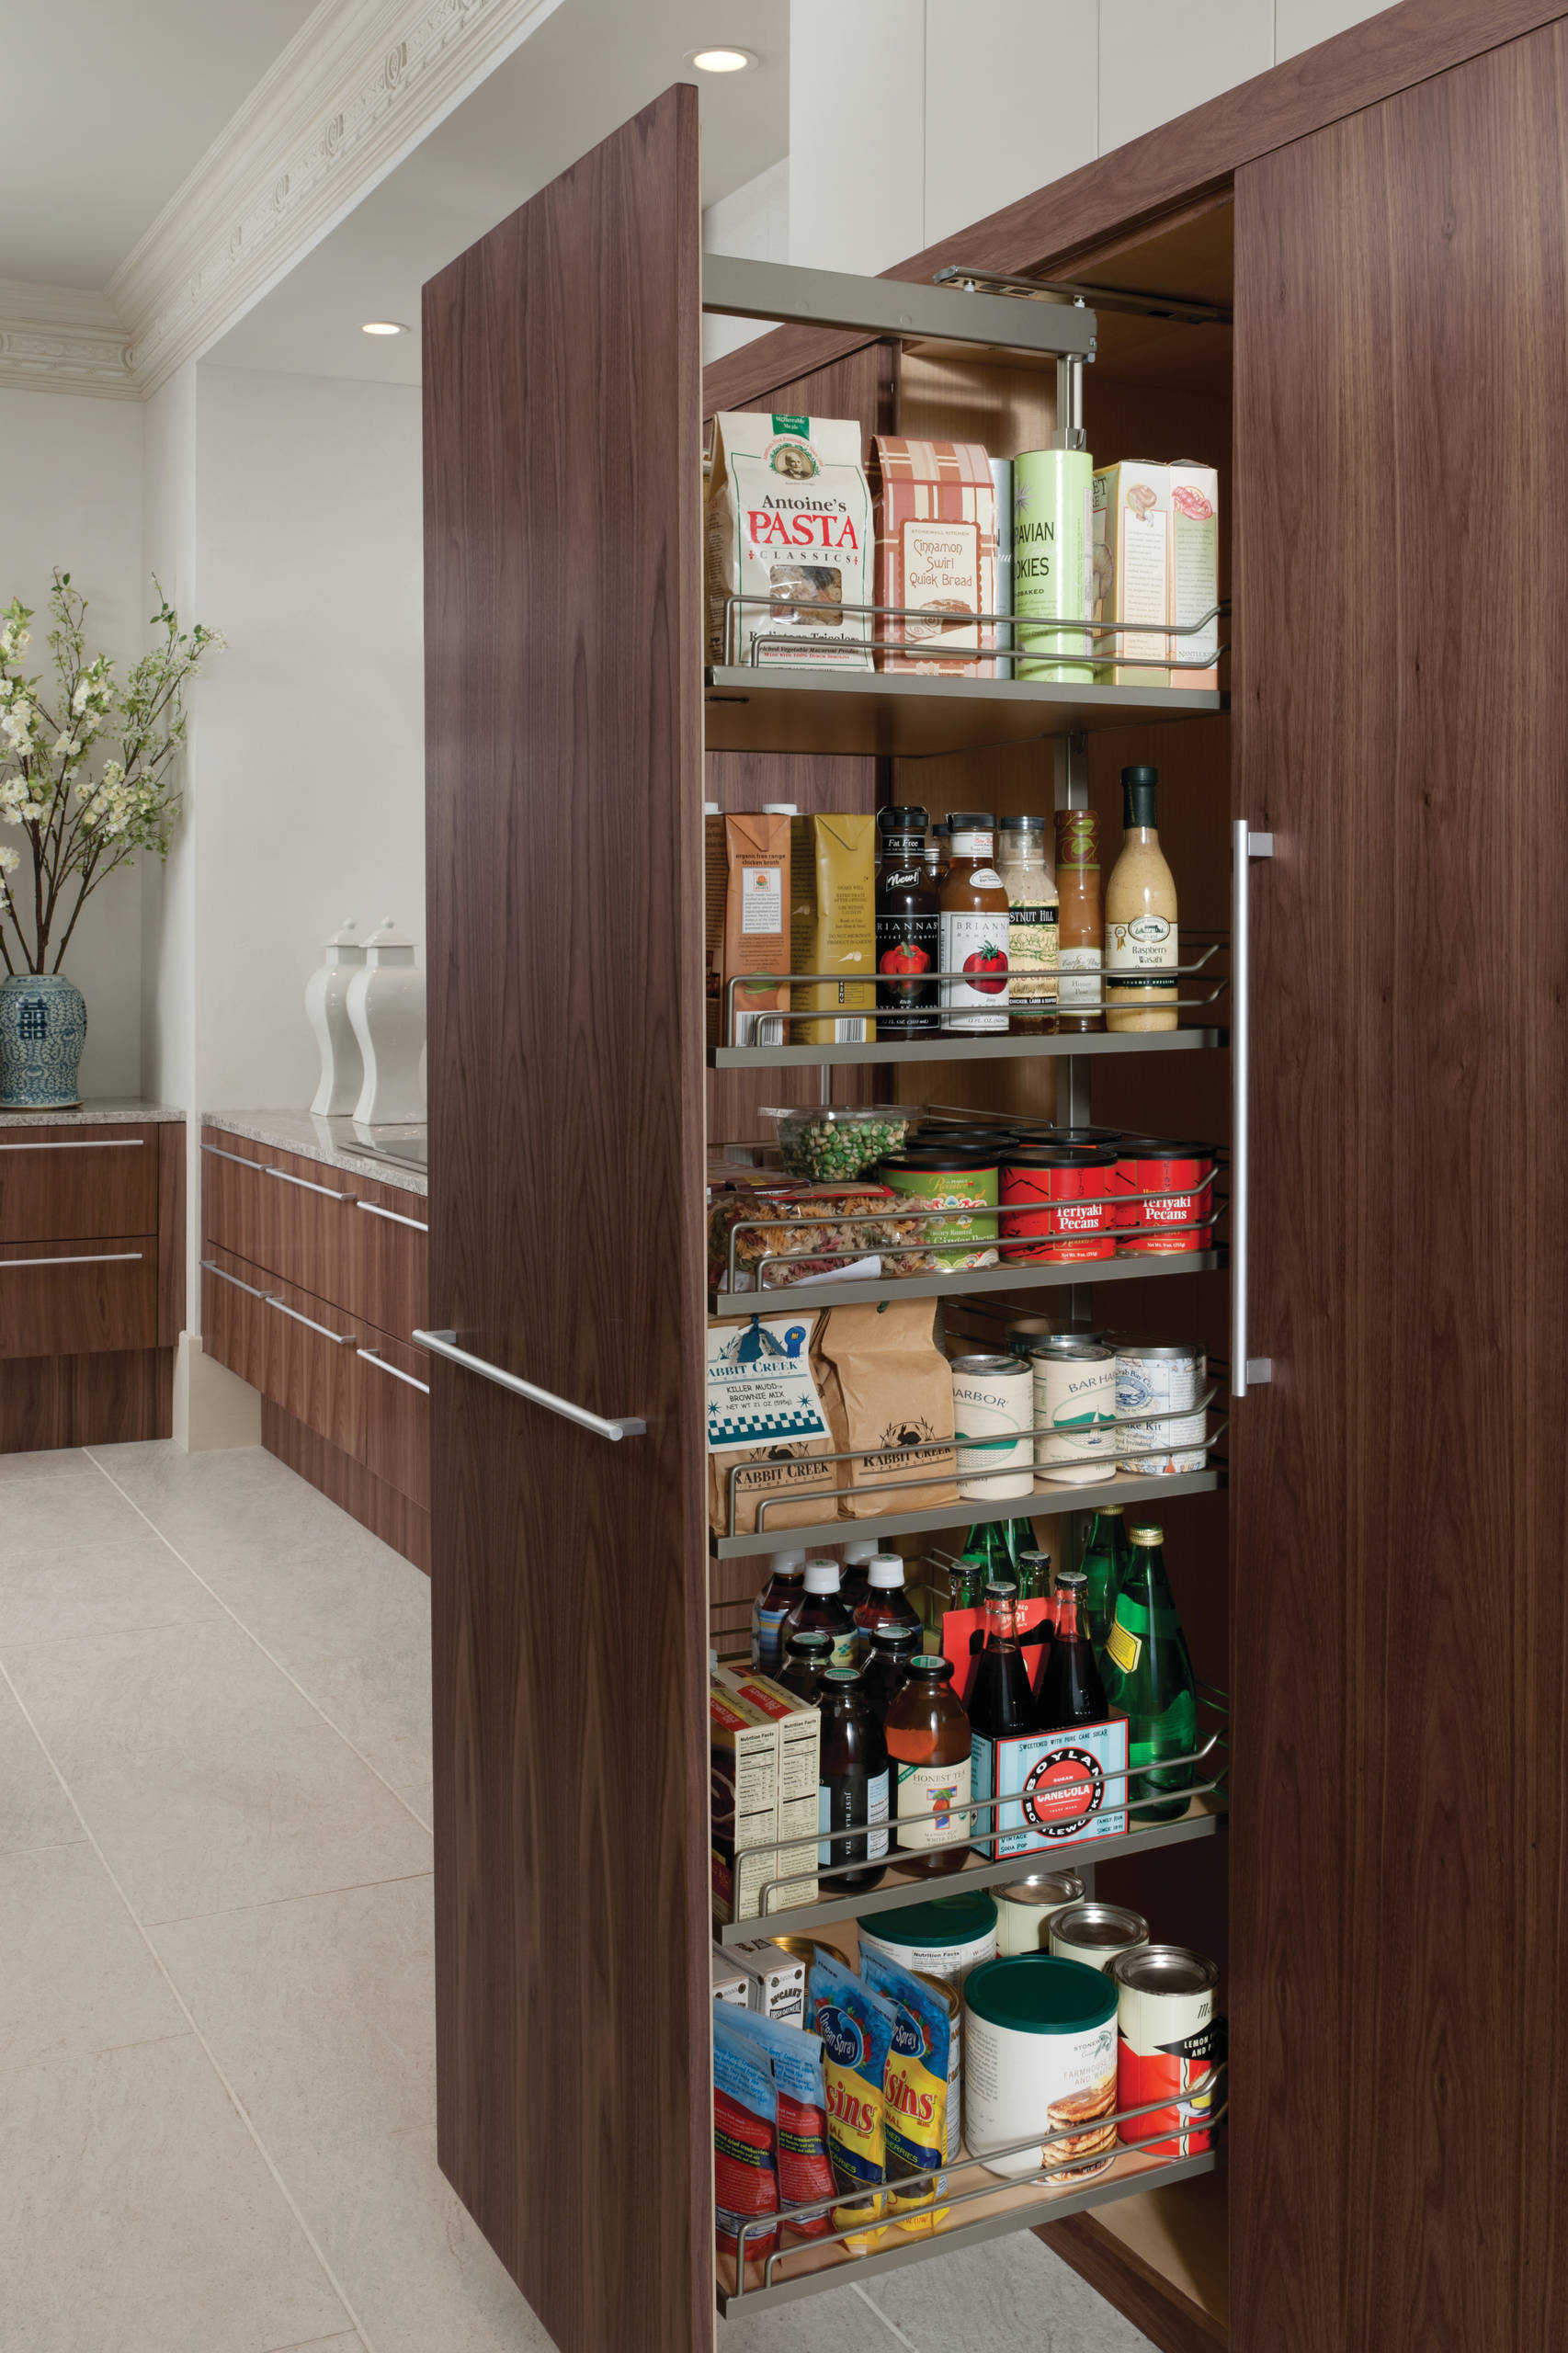 75 Beautiful Modern Kitchen Pantry Pictures Ideas July 2021 Houzz